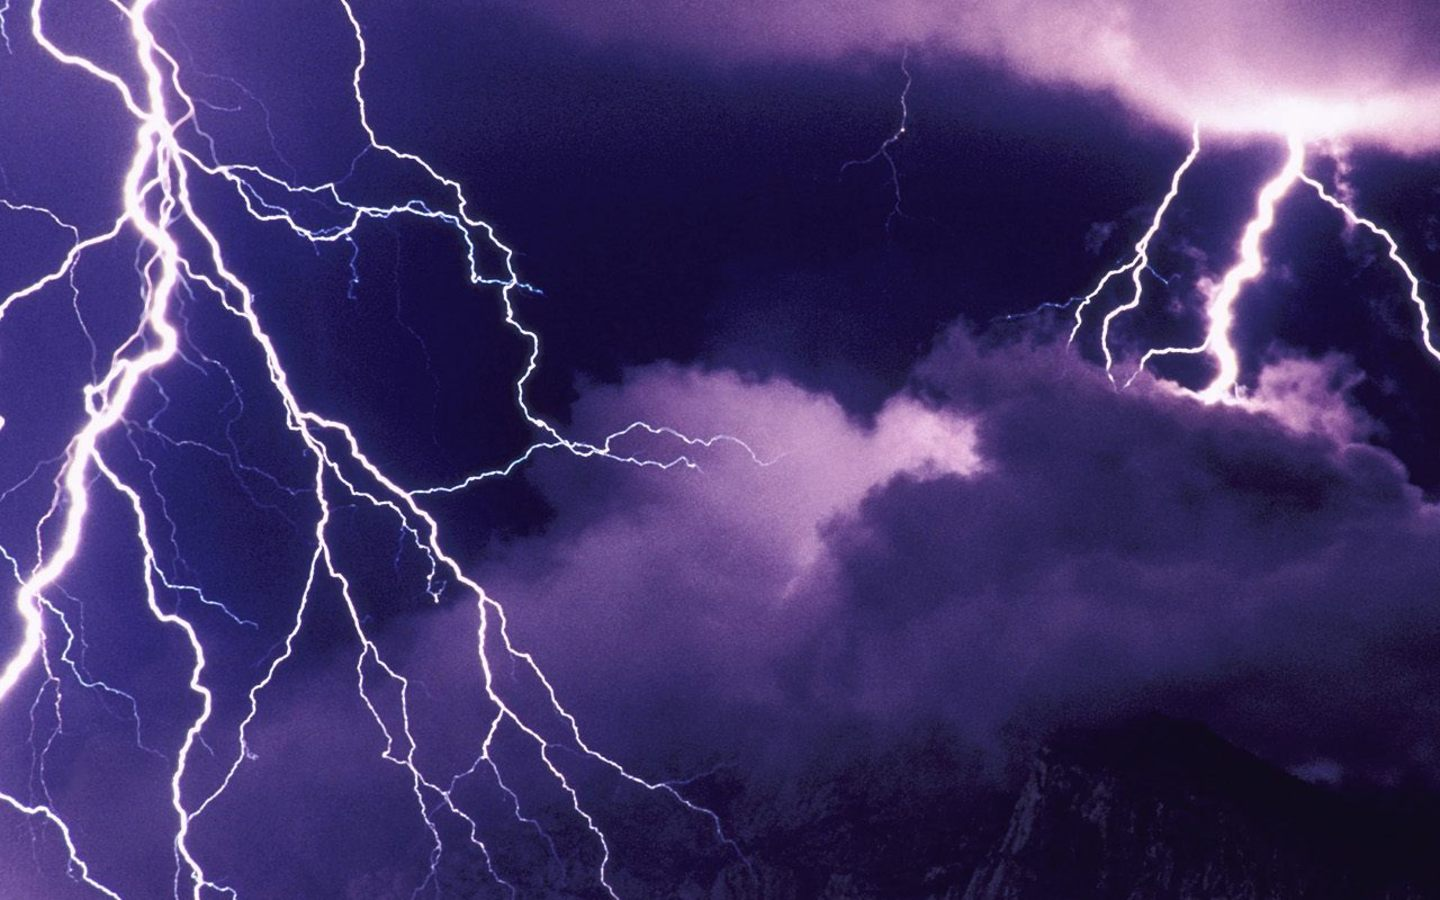 HQ Lightning Storm Wallpaper   HQ Wallpapers 1440x900